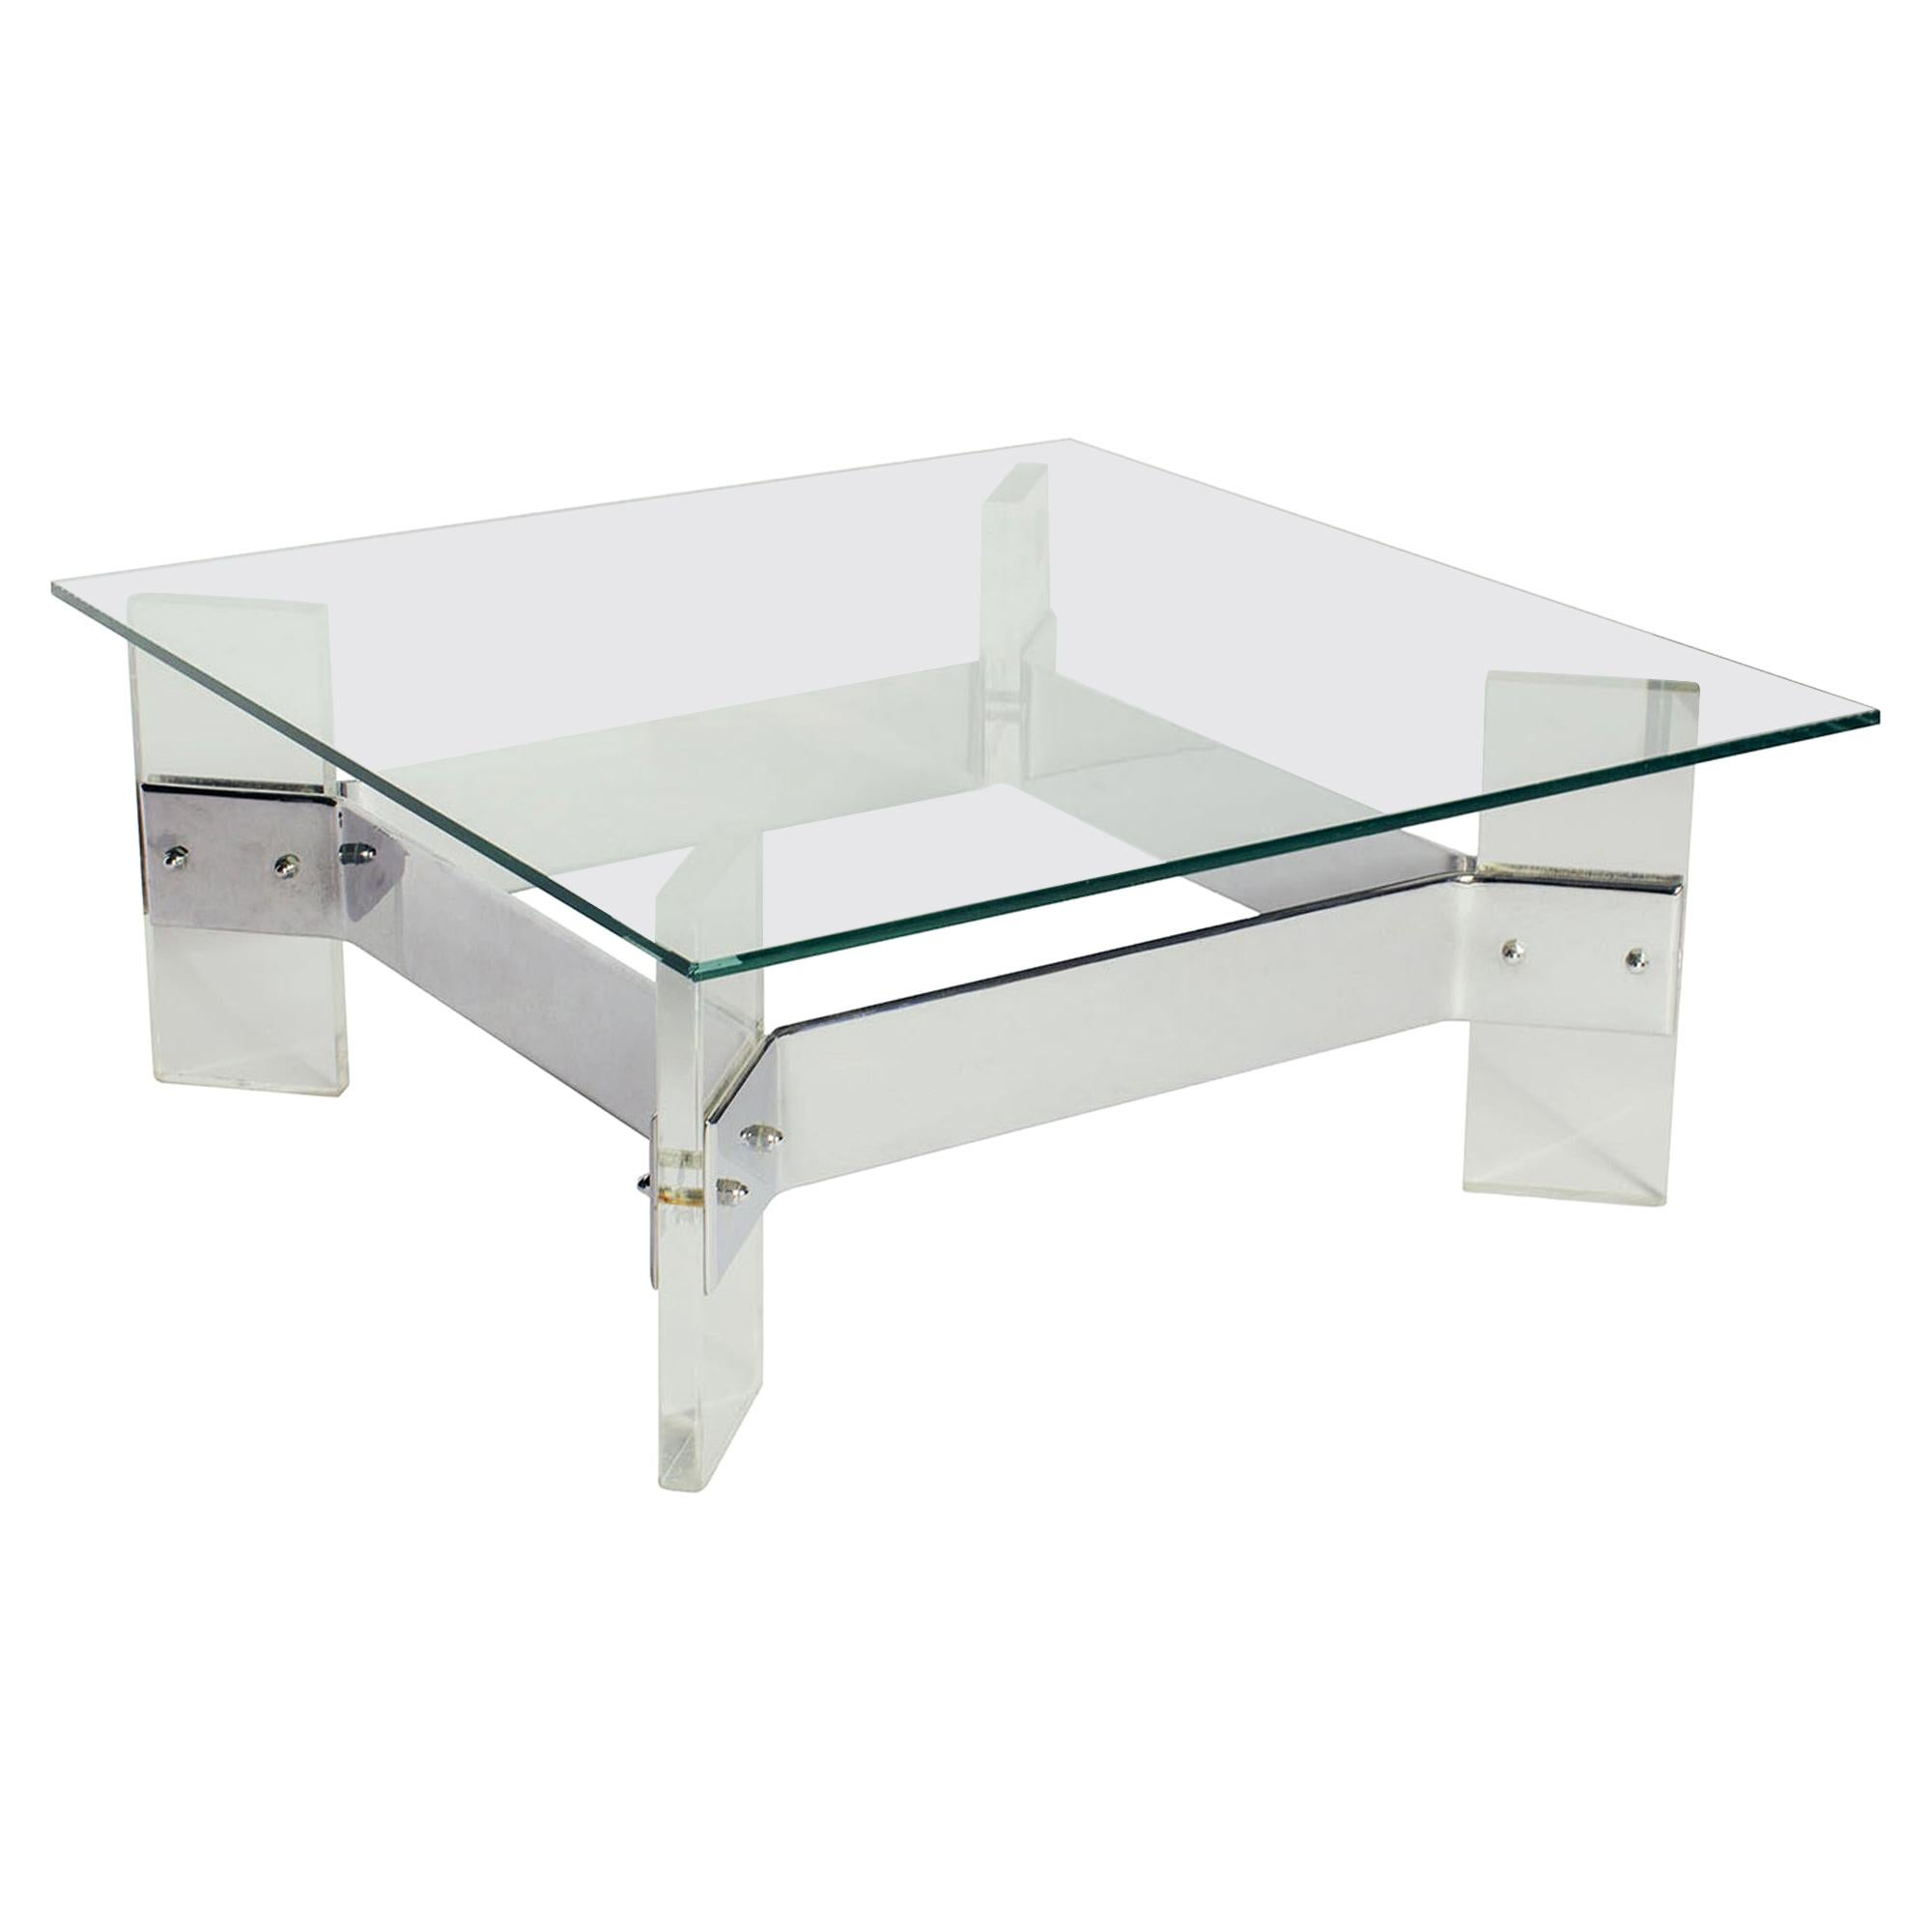 Vintage Midcentury Belgian Lucite Steel Coffee Table with Glass Top